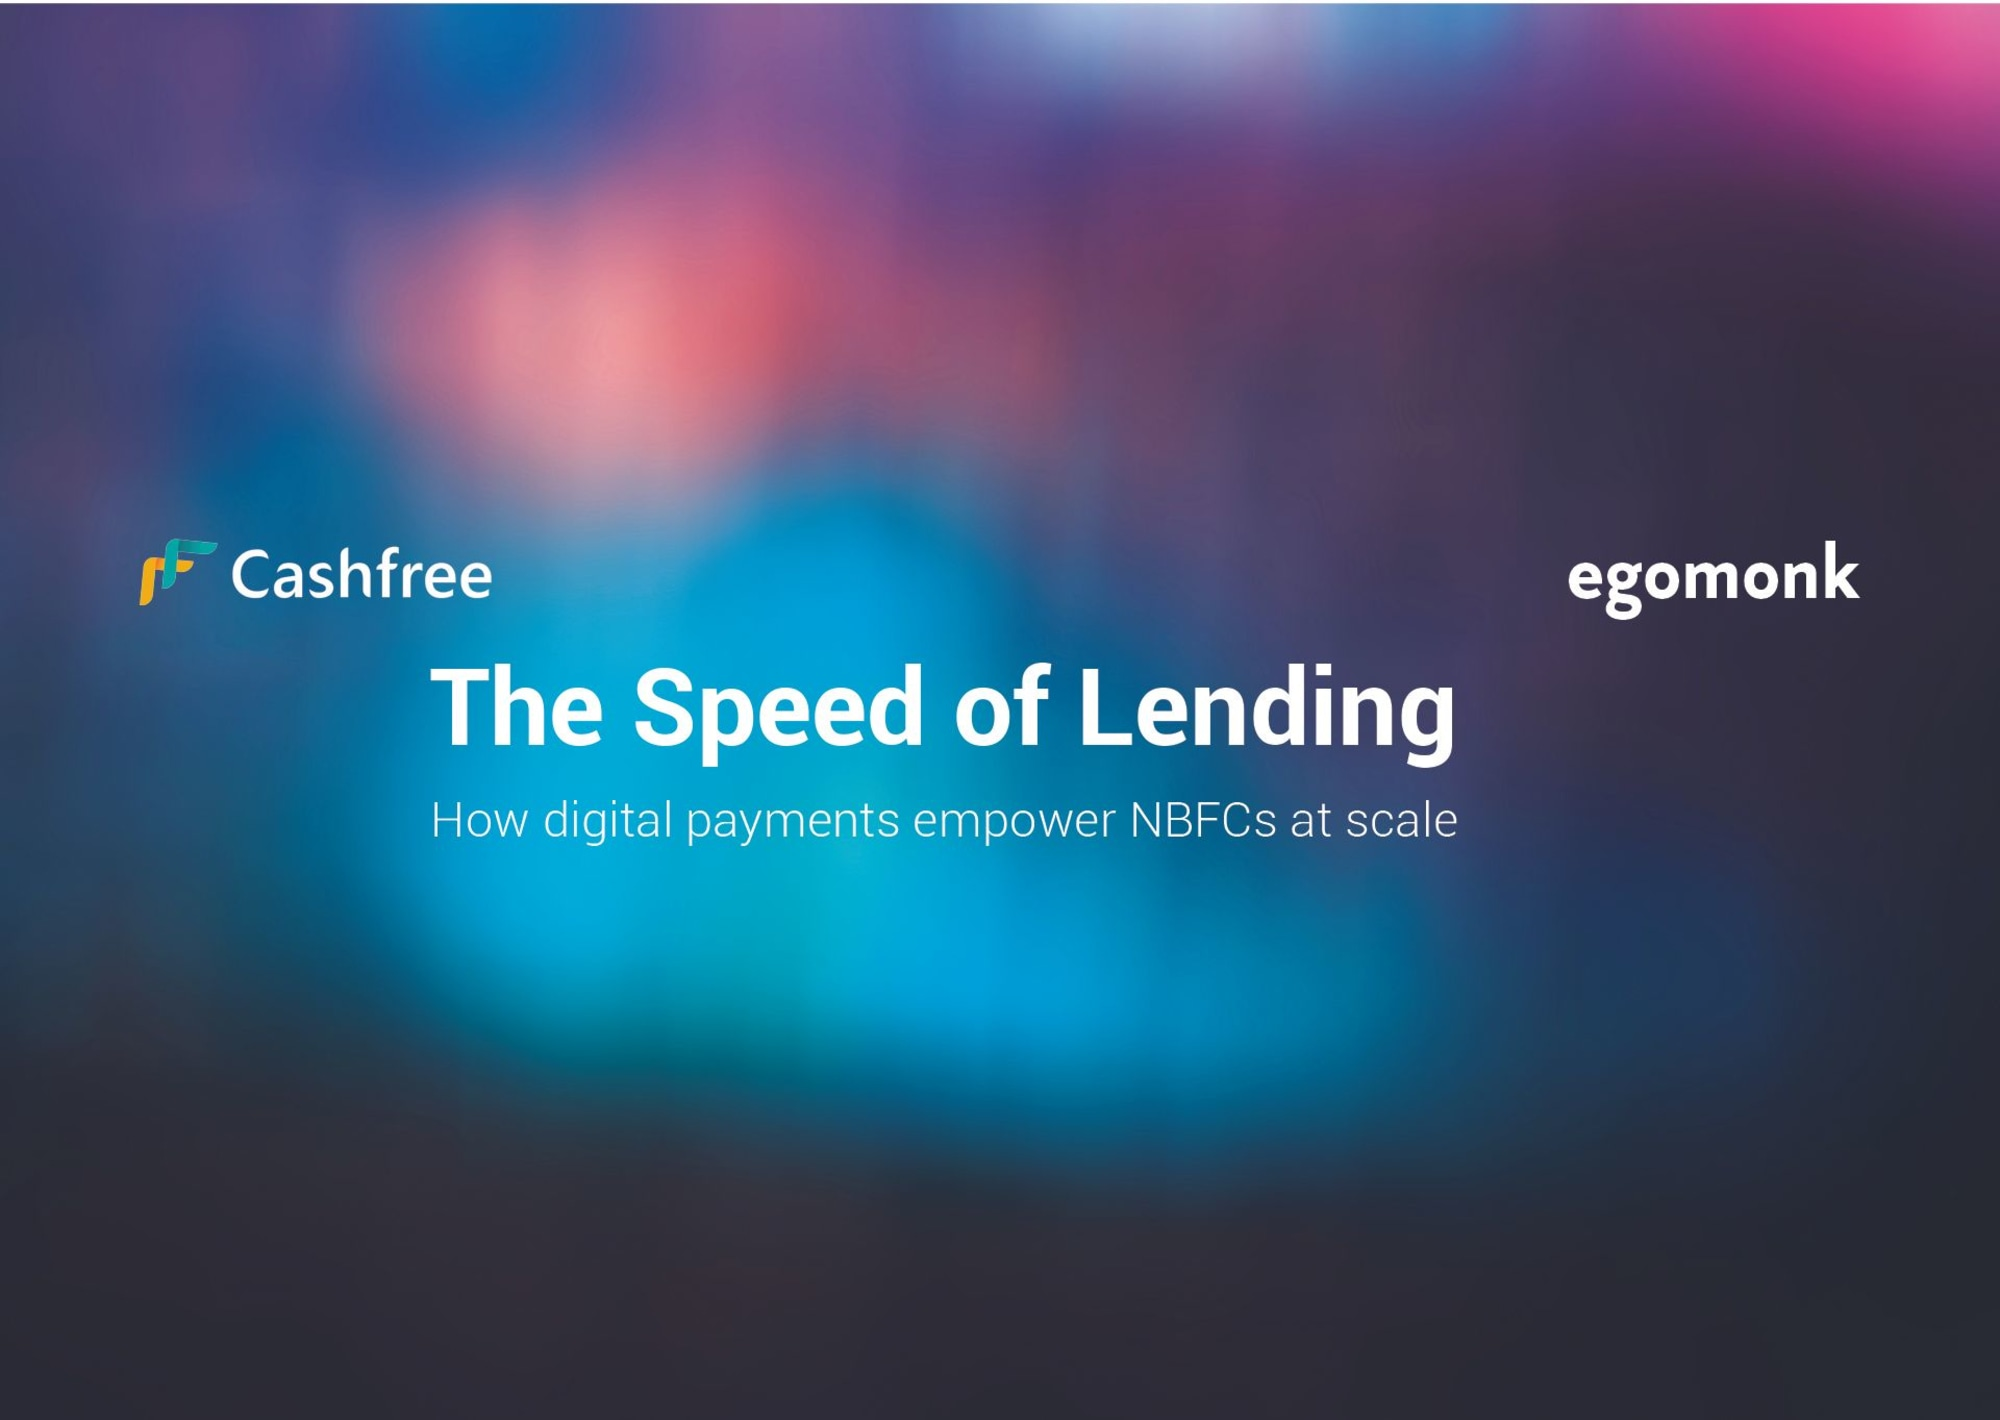 The Speed of Lending